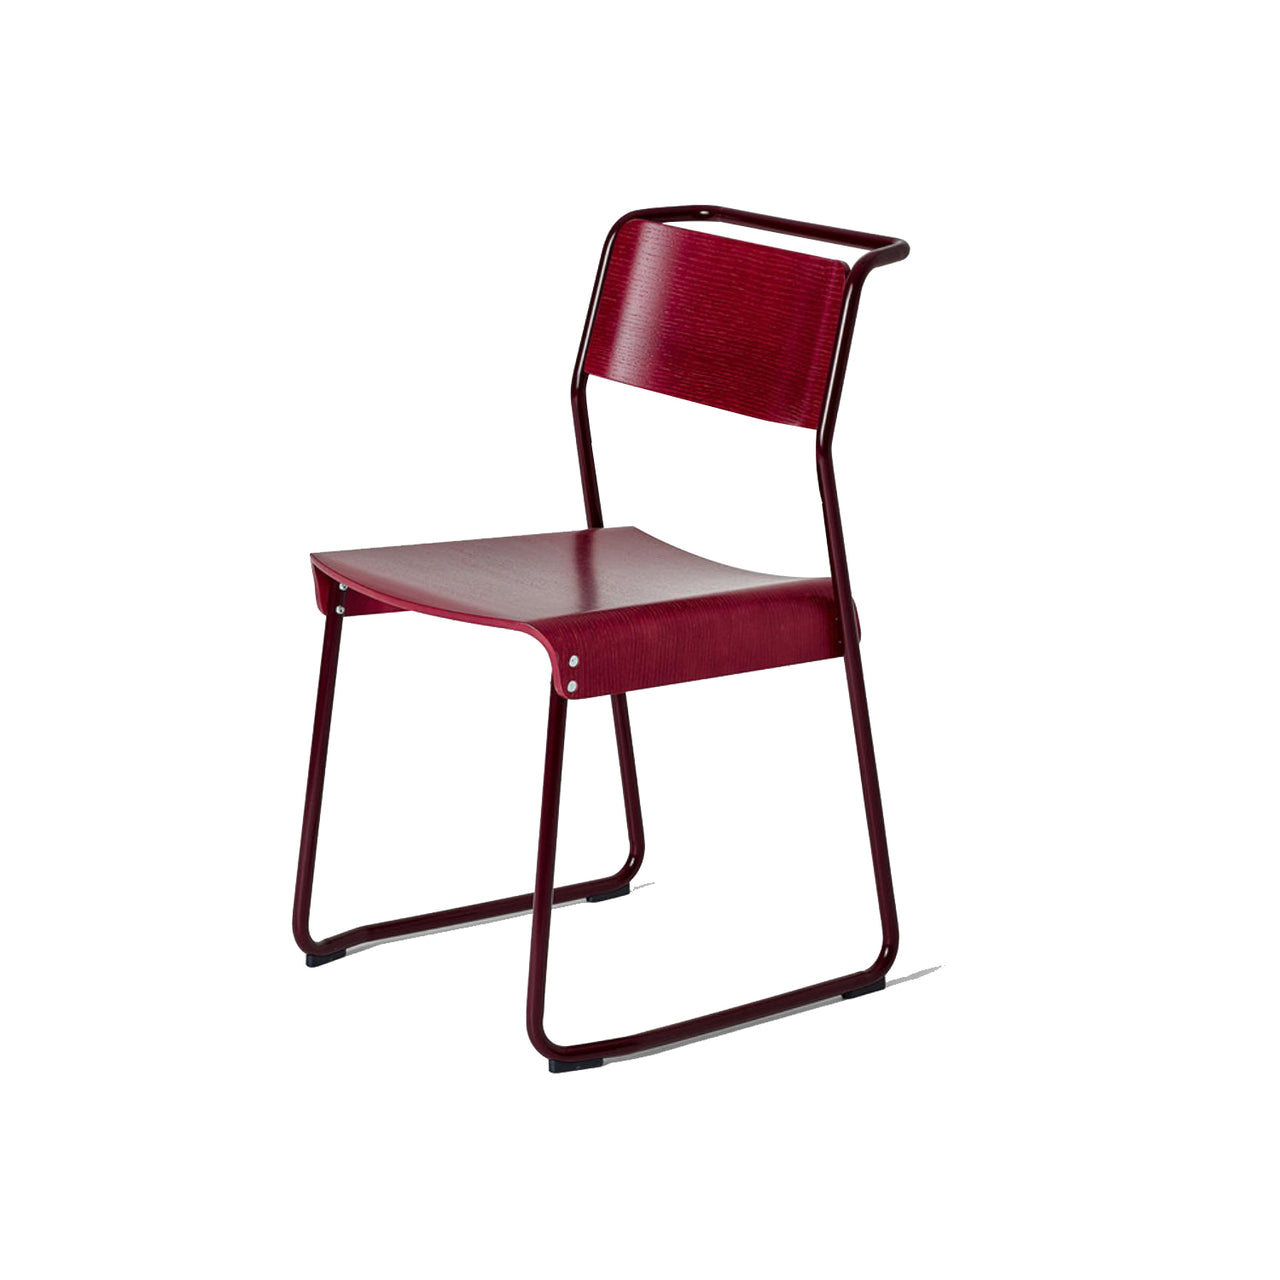 Canteen Utility Chair: Solid Colors + Black Red